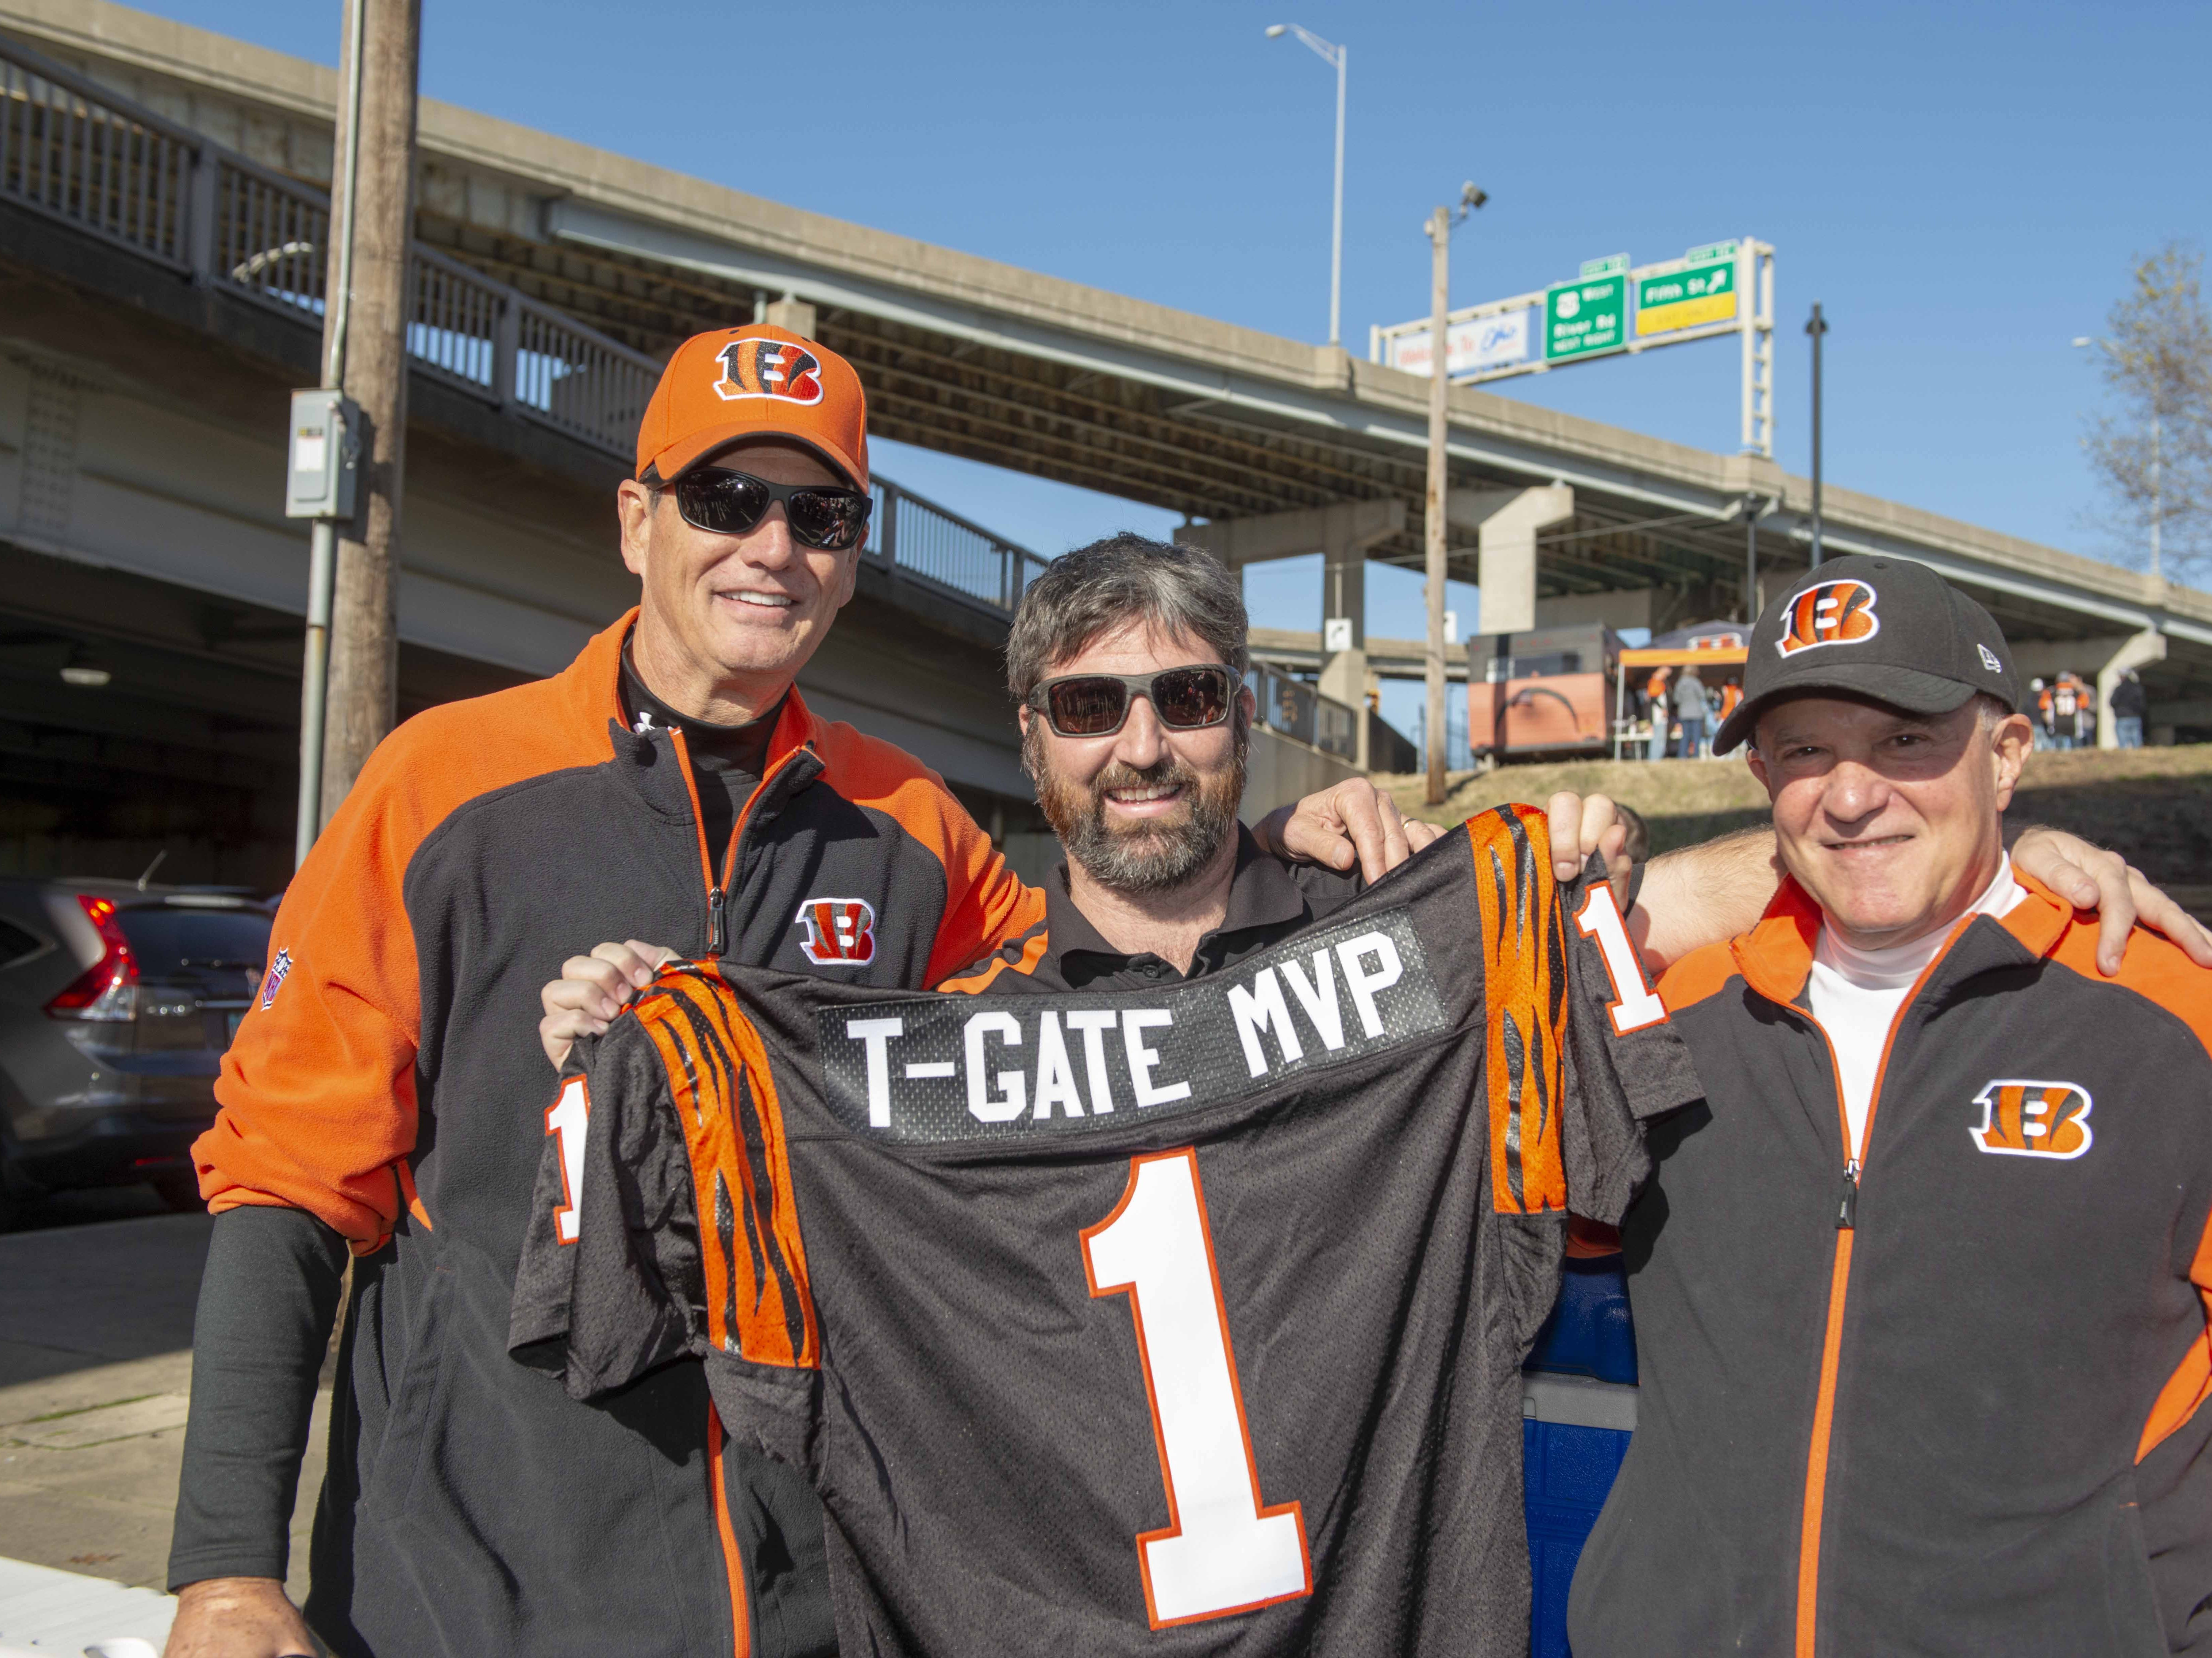 Cincinnati Bengals fans showed up for tailgating parties as the Cincinnati Bengals hosted the Denver Broncos at Paul Brown Stadium Sunday, December 2, 2018. Dave Loper and Fred Robbins present the tailgate MVP Award to Brendan McAndrew for his great effort all year.